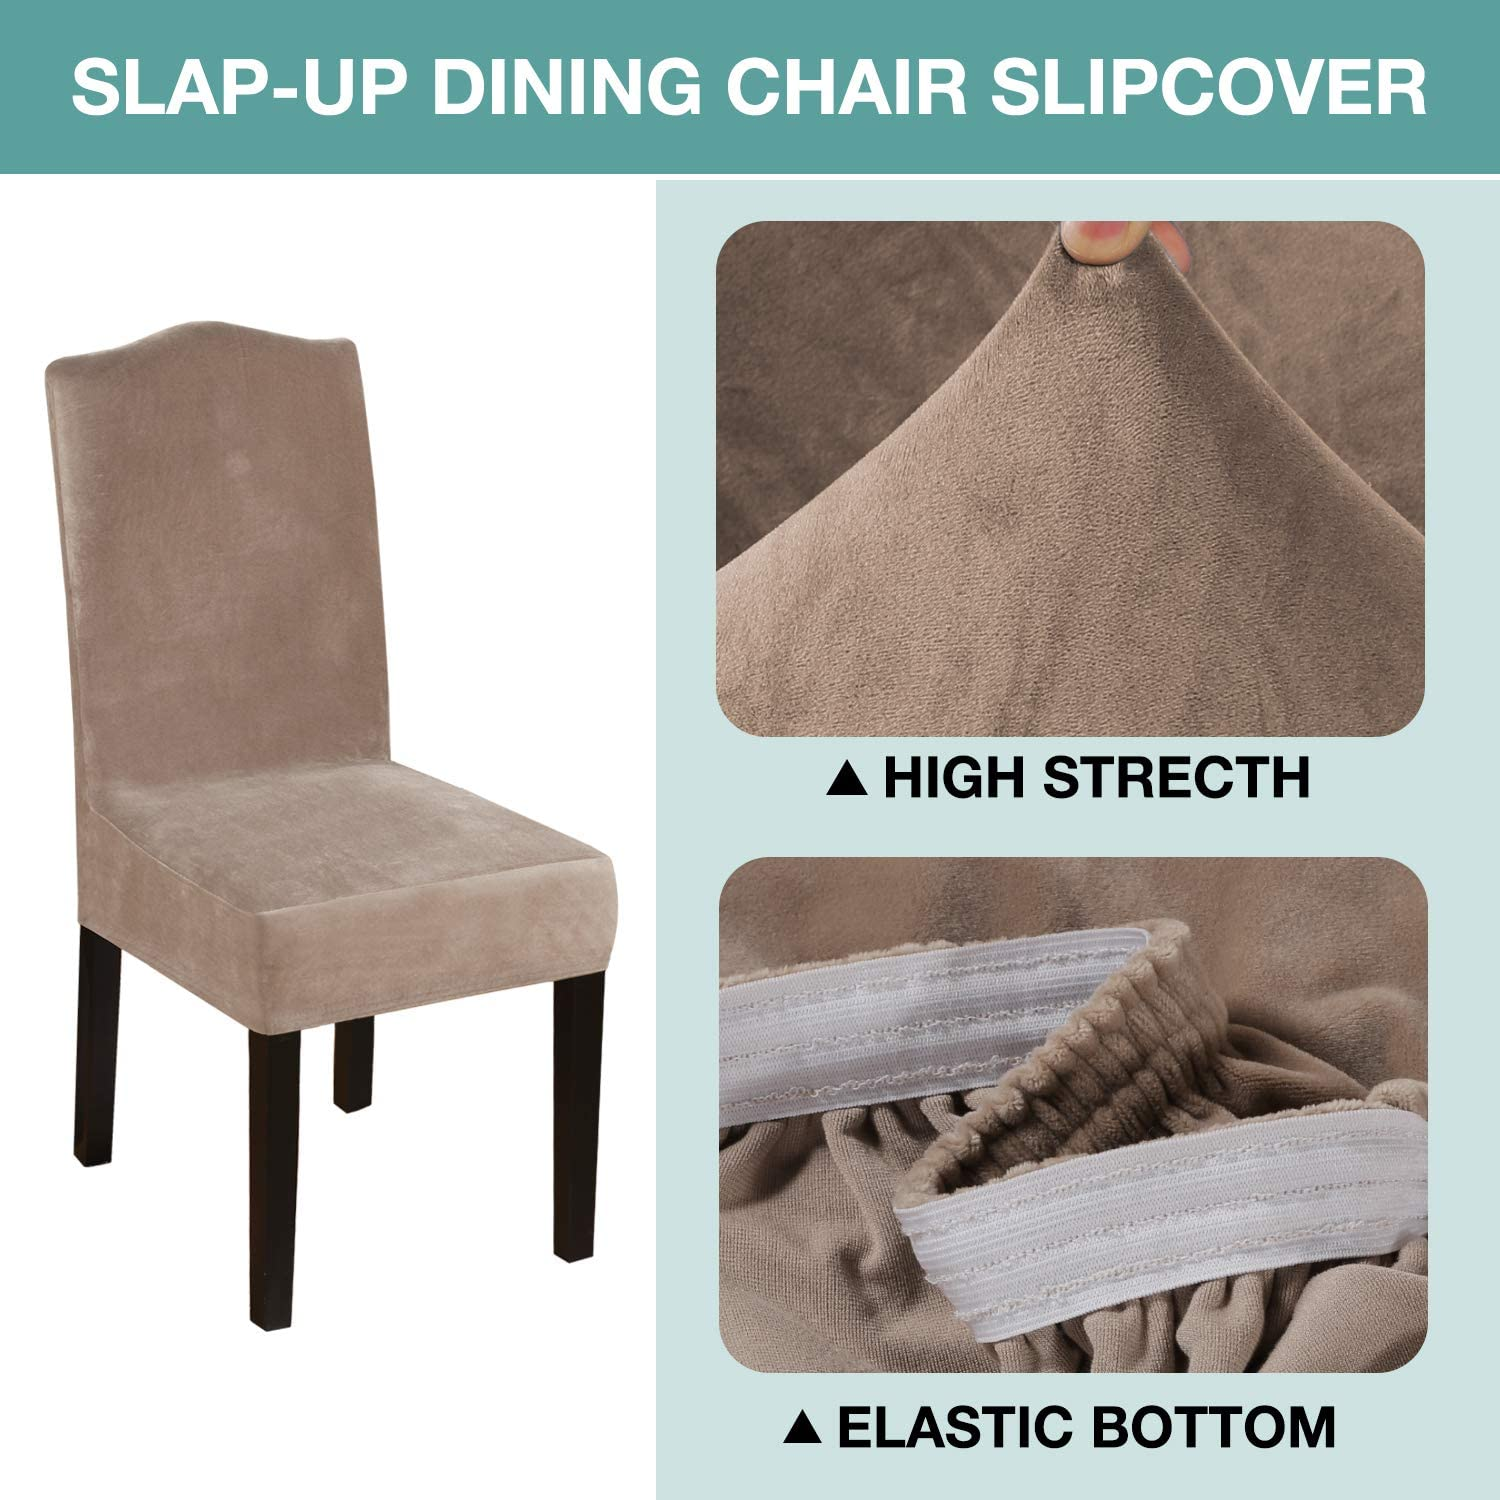 6 Pack Turquoize Stretch Dining Chair Slipcovers Plush Velvet Removable Washable Kitchen Parson Chair Protector Cover Seat Slipcover for Hotel Taupe Banquet Wedding Party Dining Room,Ceremony